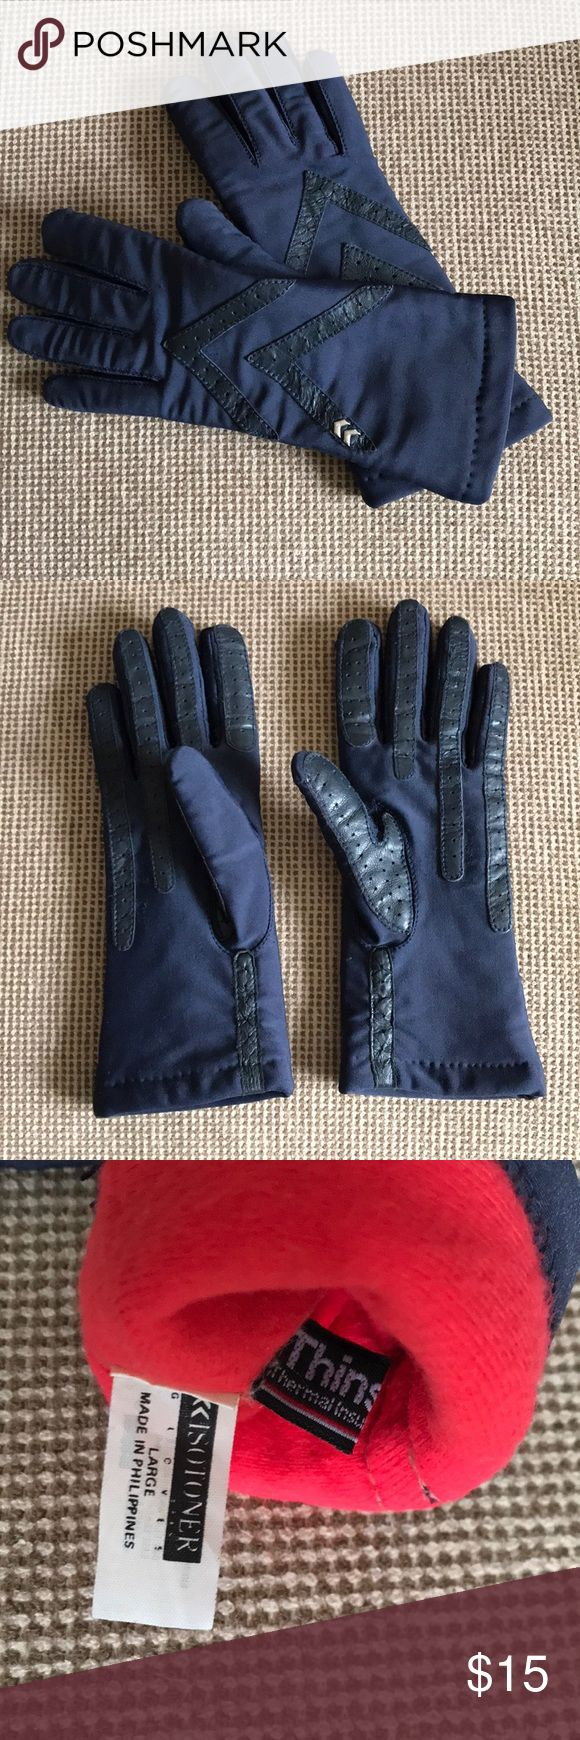 Women's Isotoner Gloves Like new blue Thinsulate gloves - size Large Isotoner Accessories Gloves & Mittens